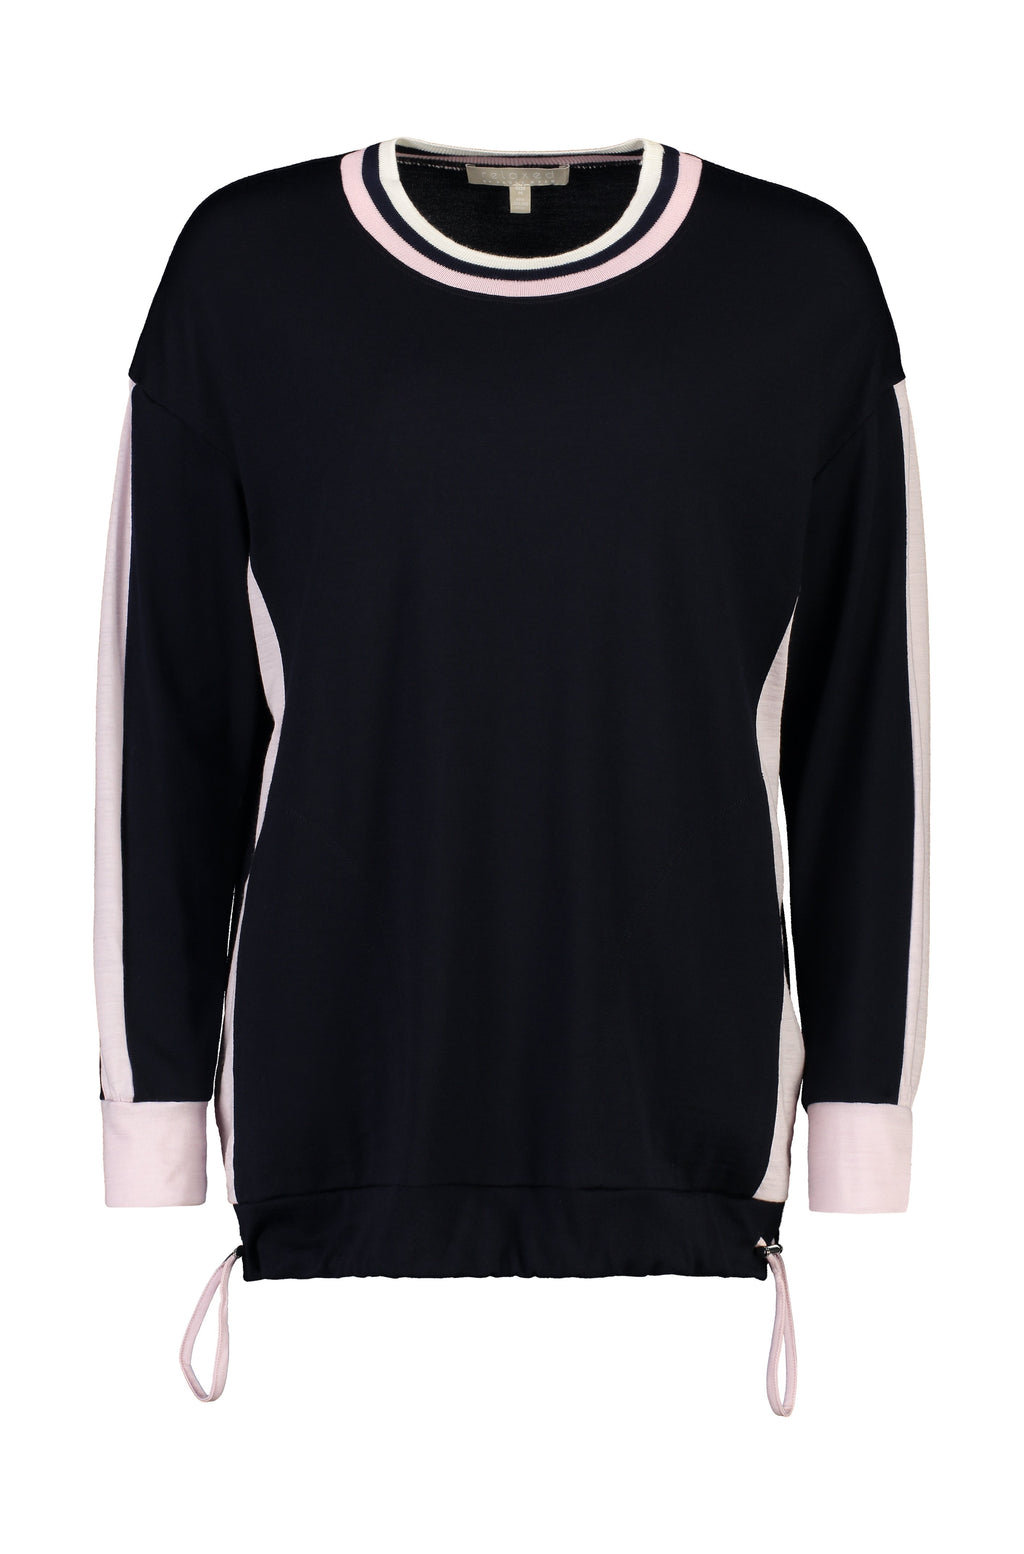 PAULA RYAN RELAXED Contrast Band Top - Ultrafine Merino - Navy/Blossom - Paula Ryan